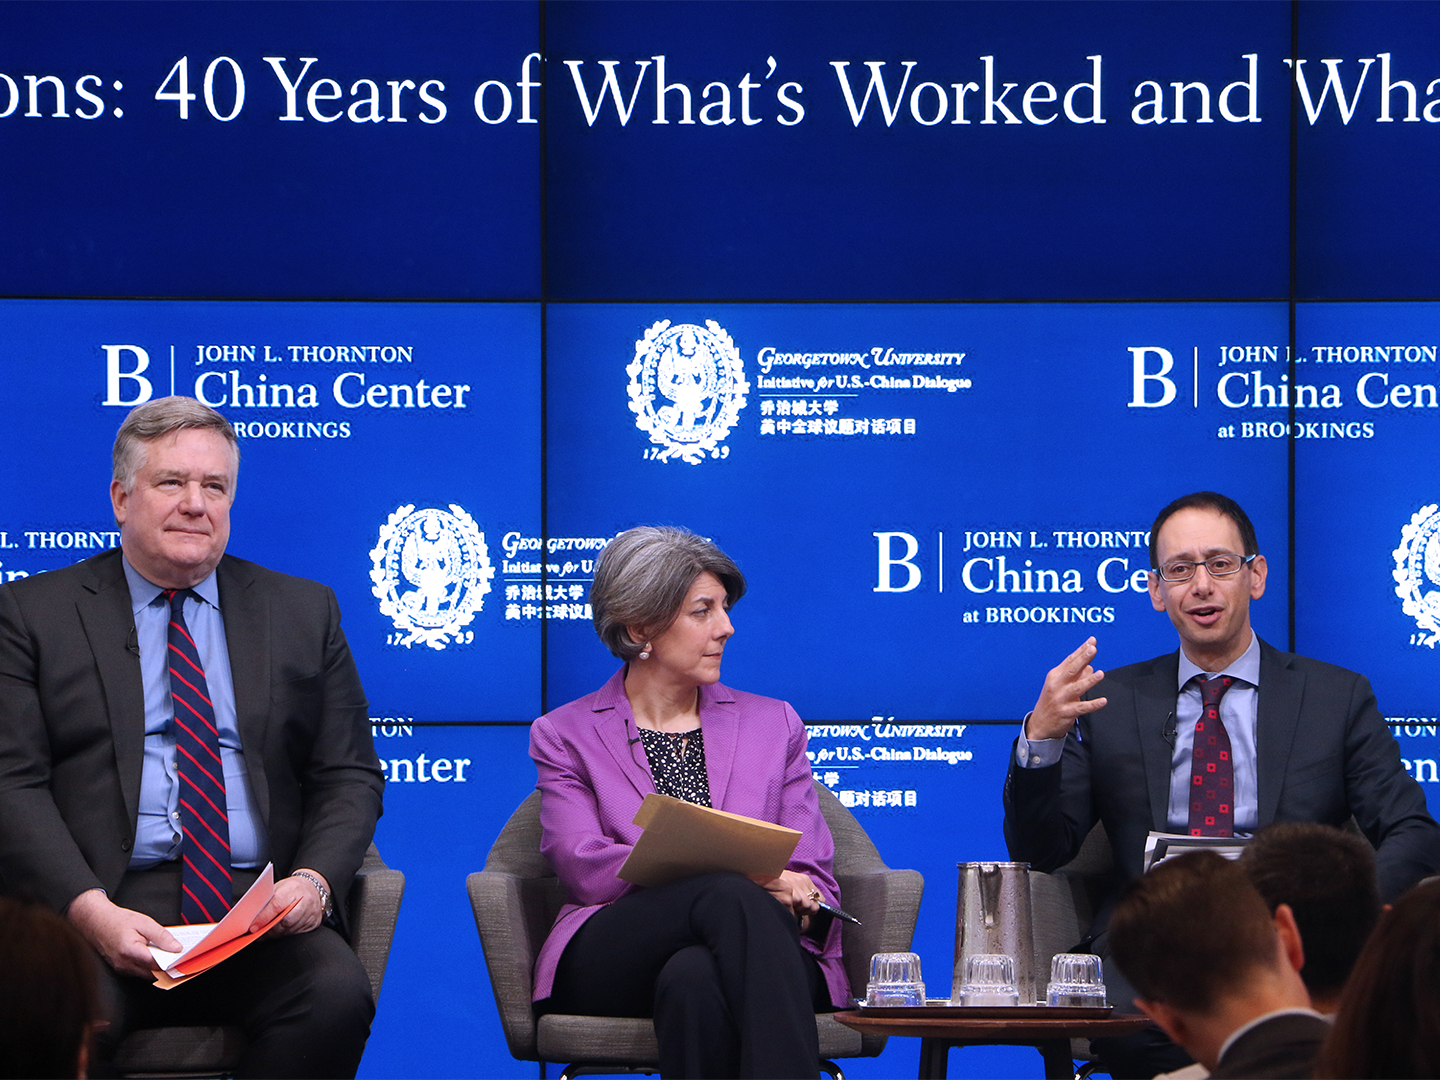 James Green provides background on the launch of the U.S.-China Dialogue Podcast.